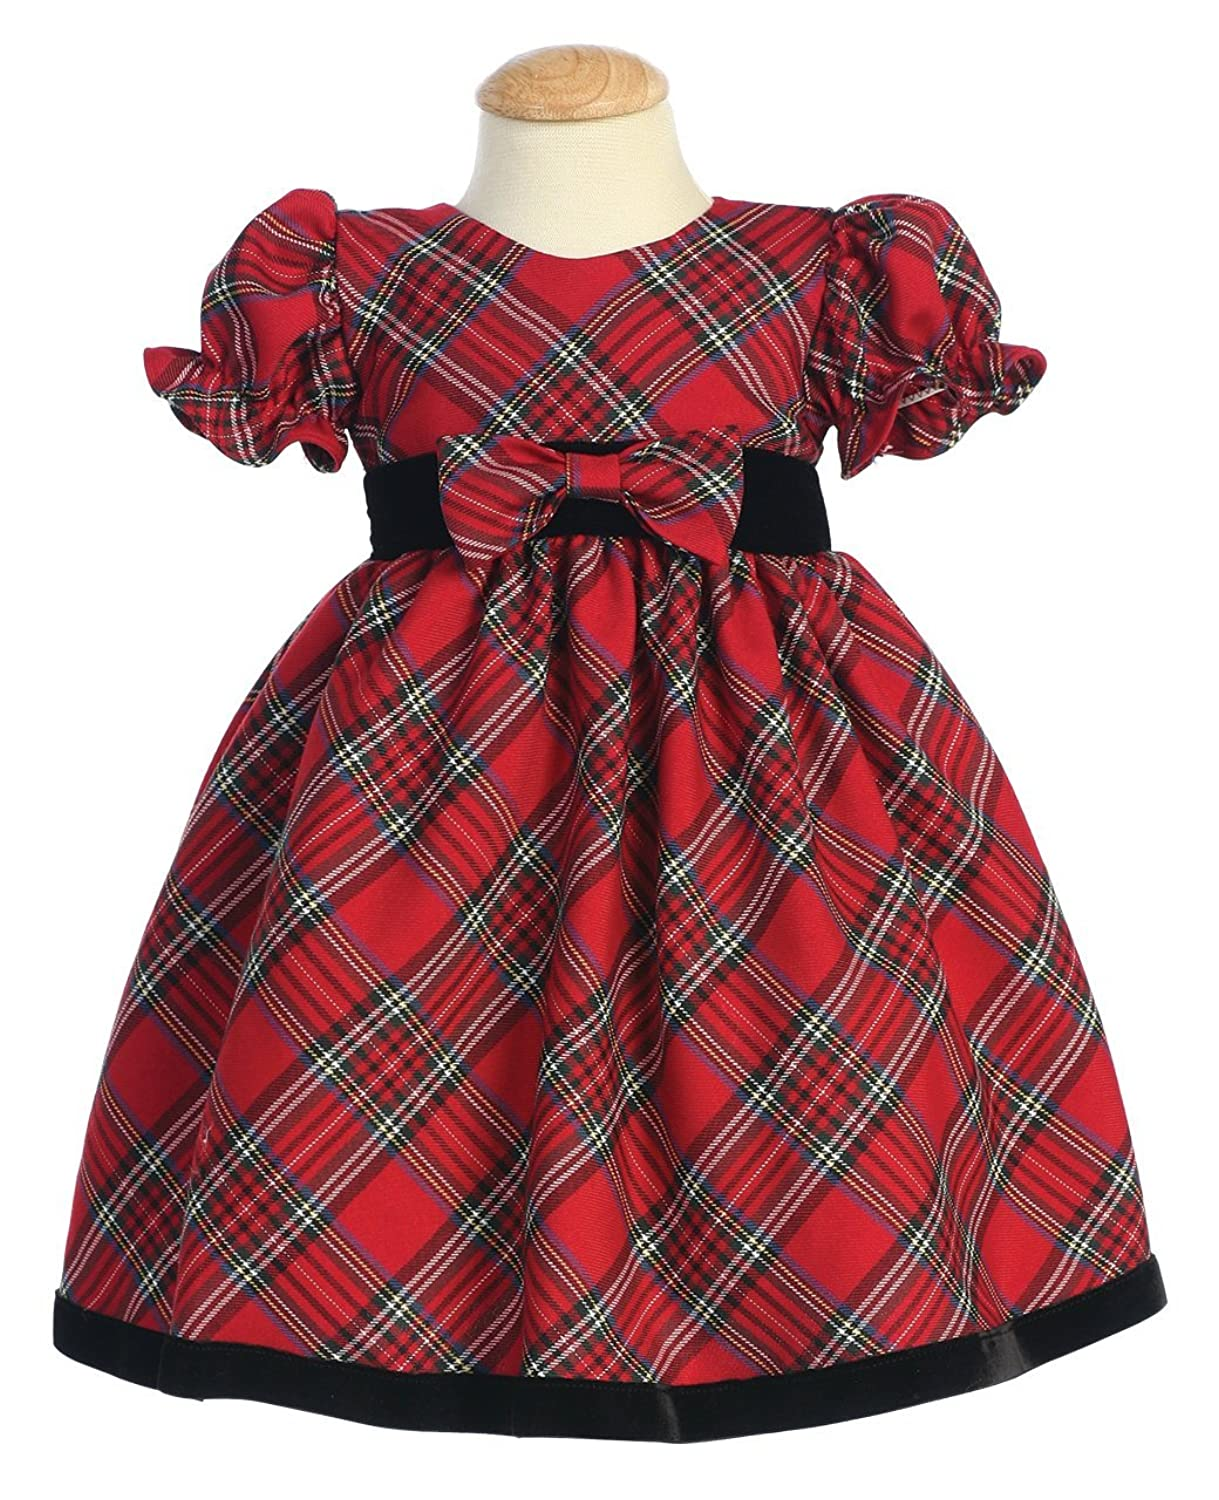 Christmas dress for baby - Plaid Holiday Christmas Baby Dress With Velvet Trim